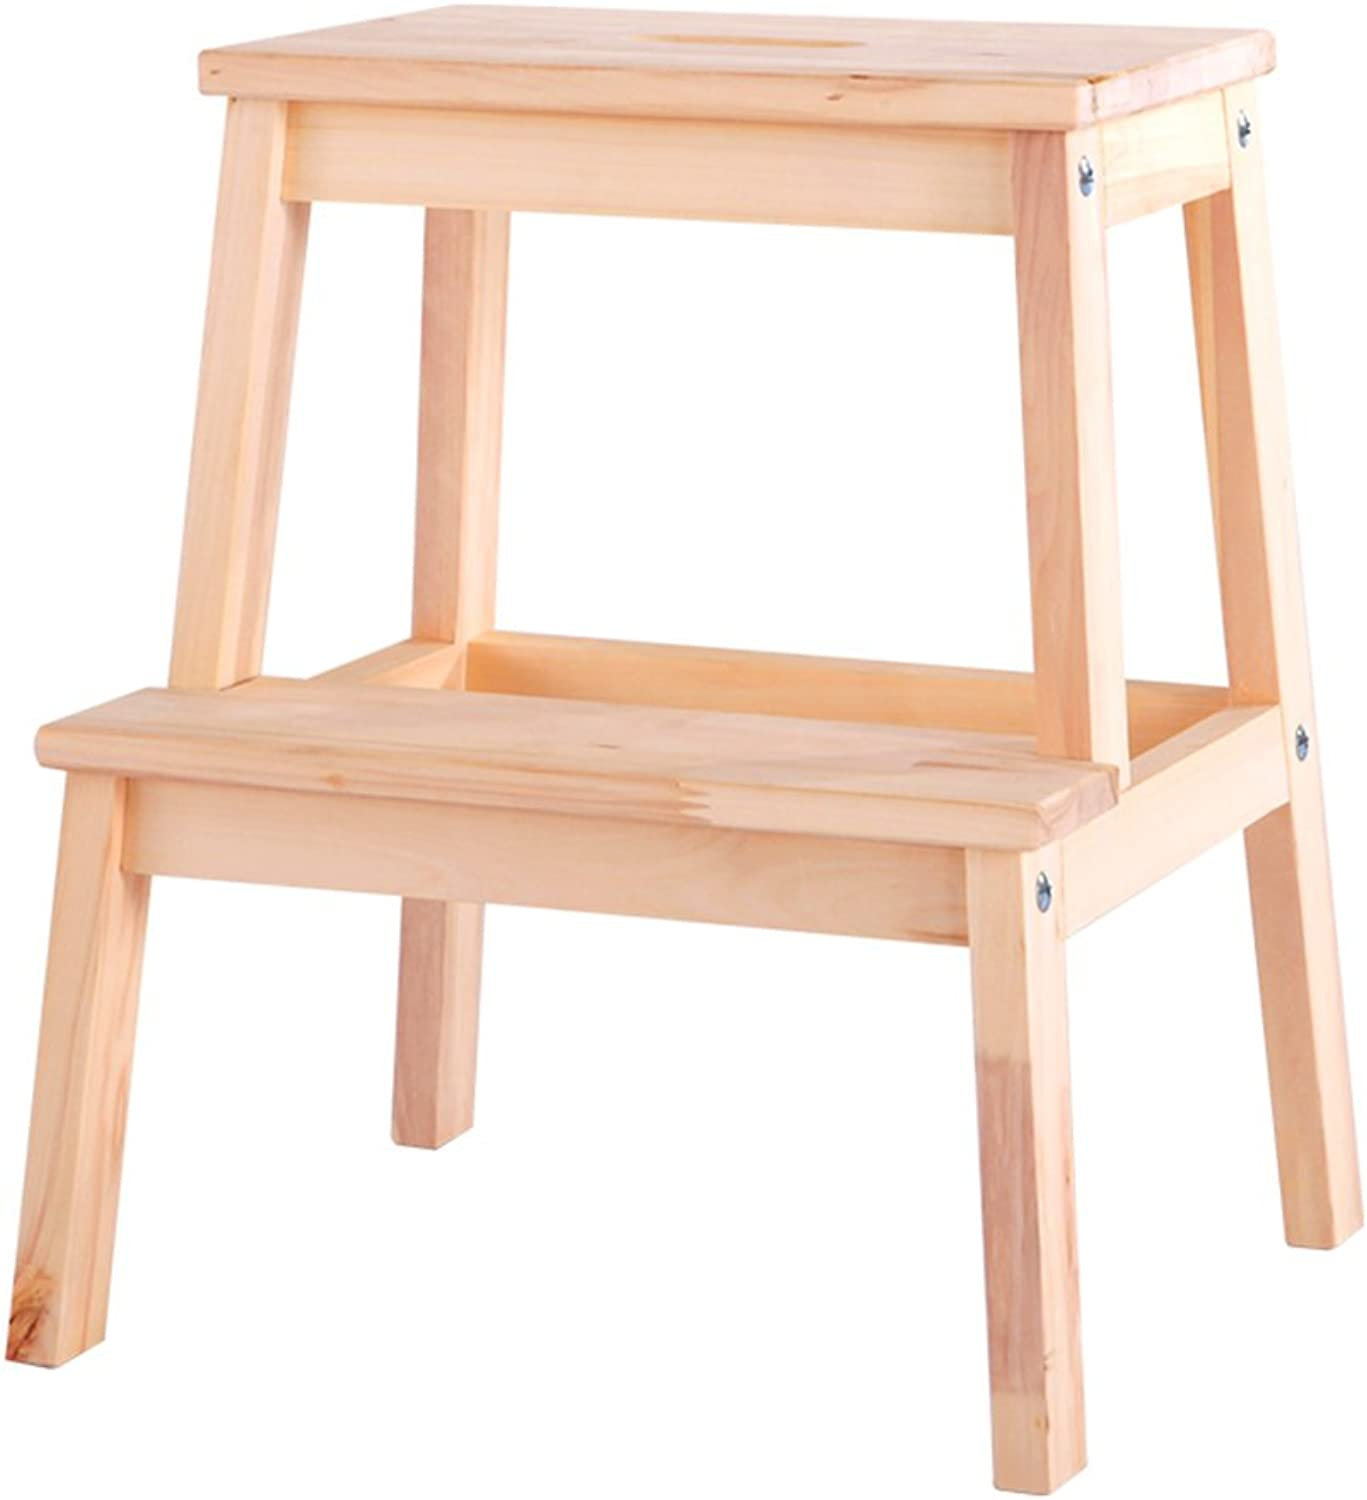 WUFENG Ladder Stool Small Stool Chair Non-Slip Firm Multifunction Household (color   Wood color, Size   45x50cm)